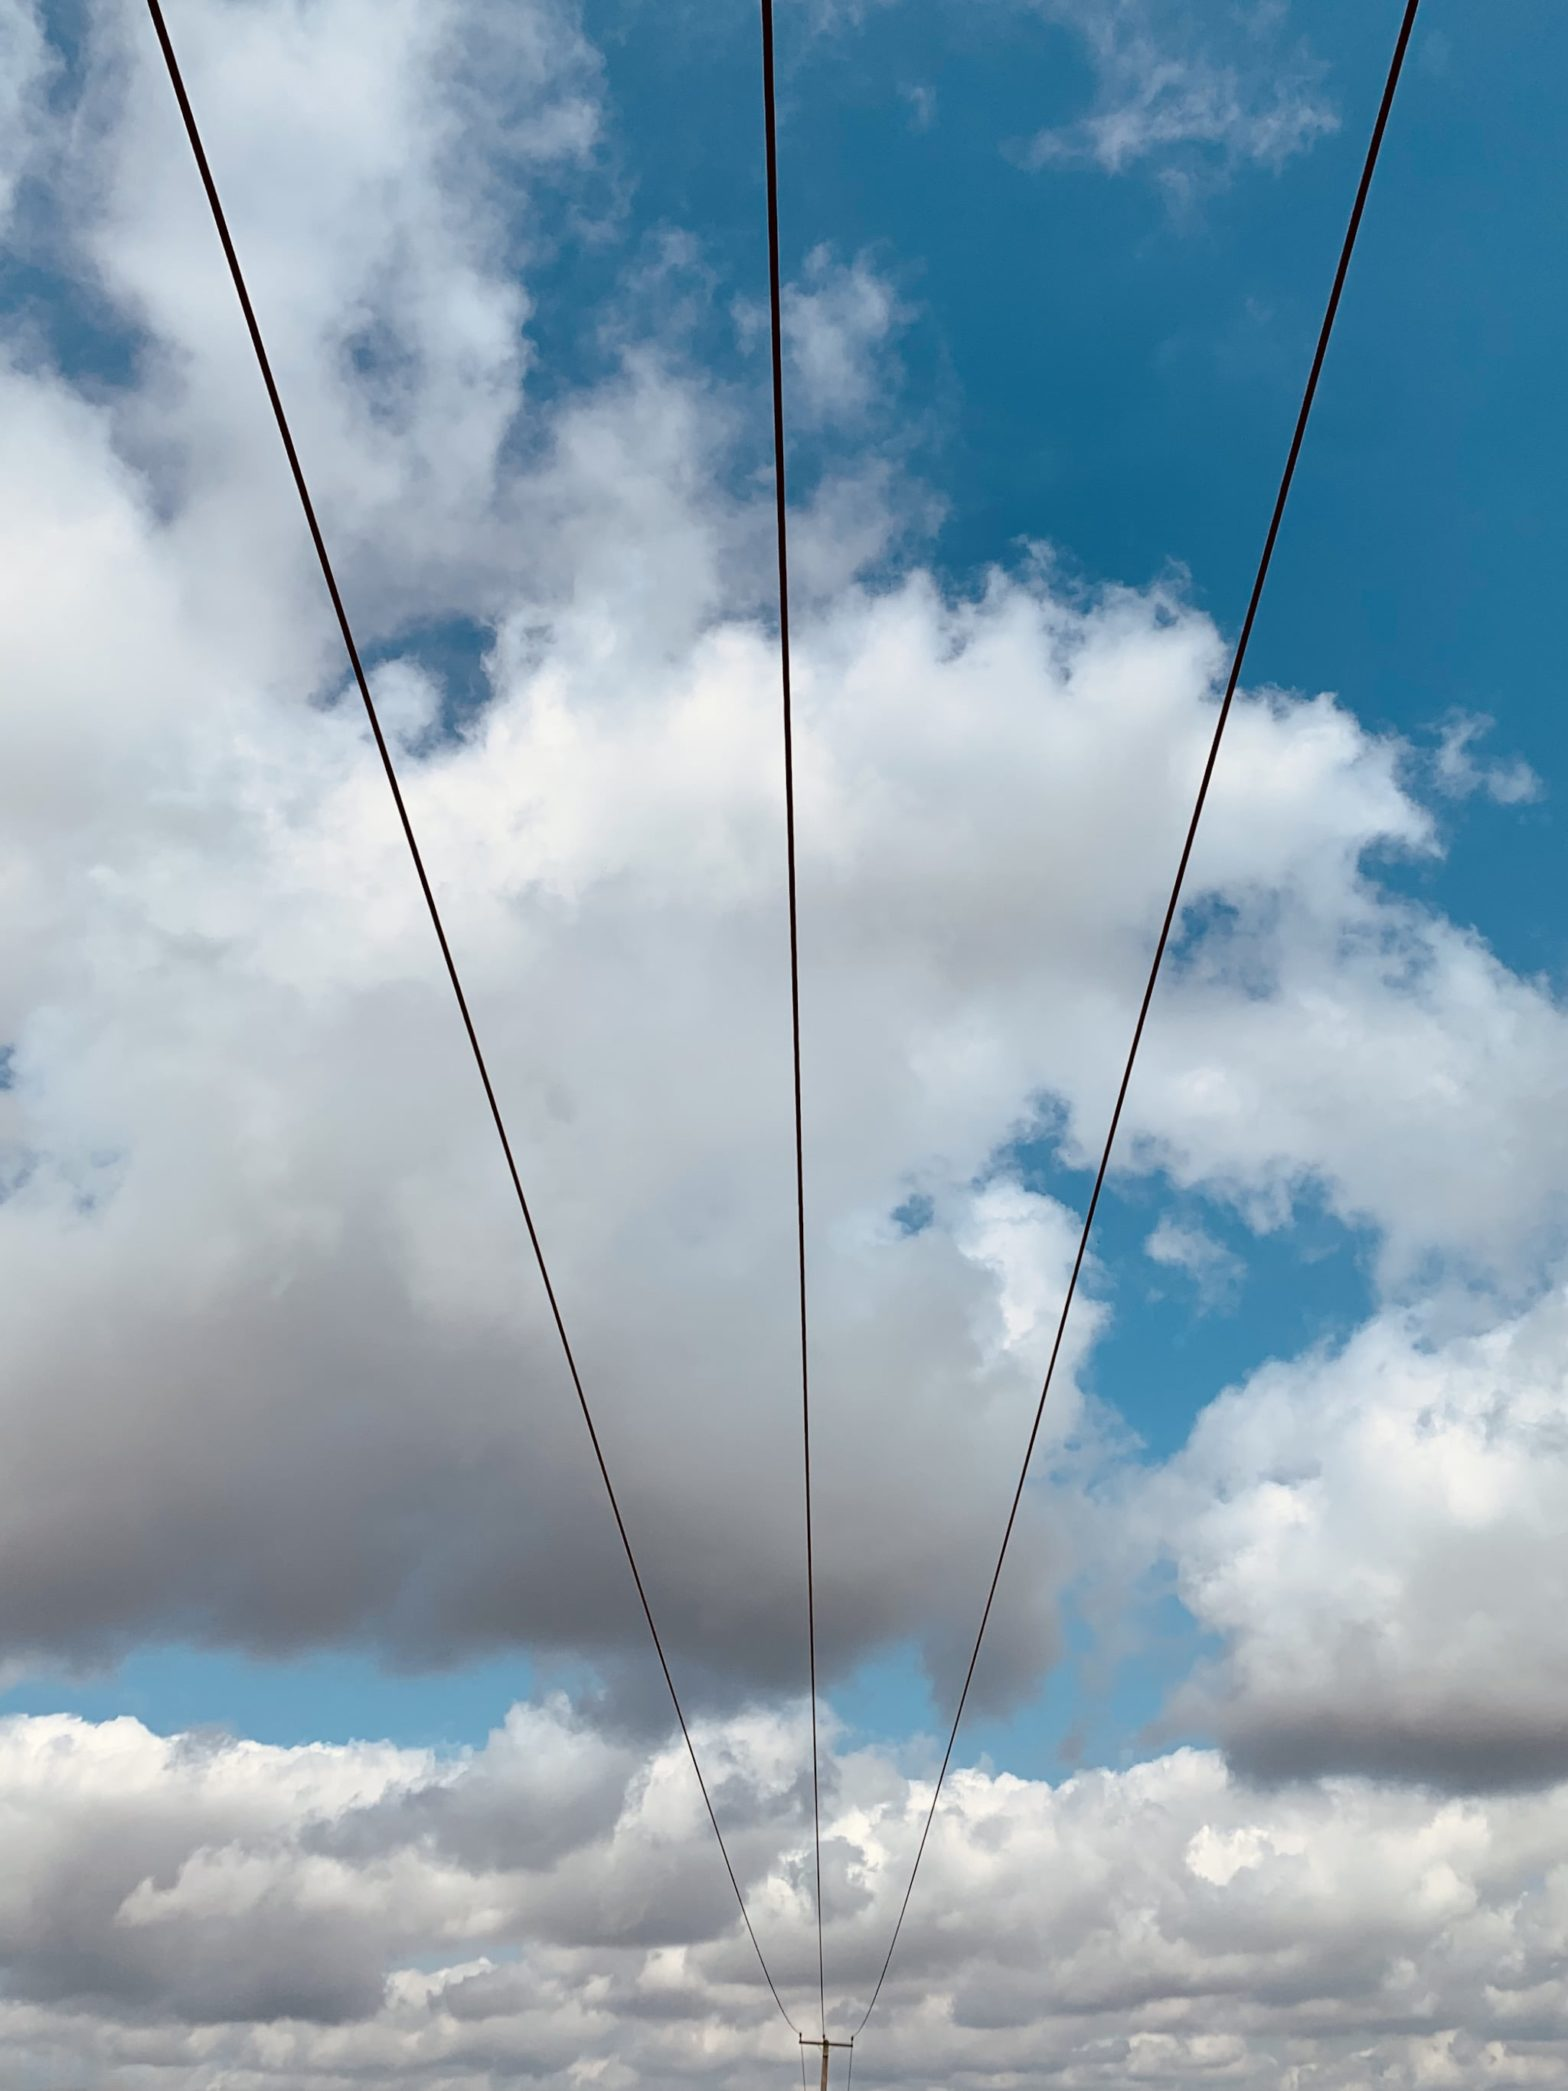 Power lines running in to the distance agains a blight blue sky with clouds